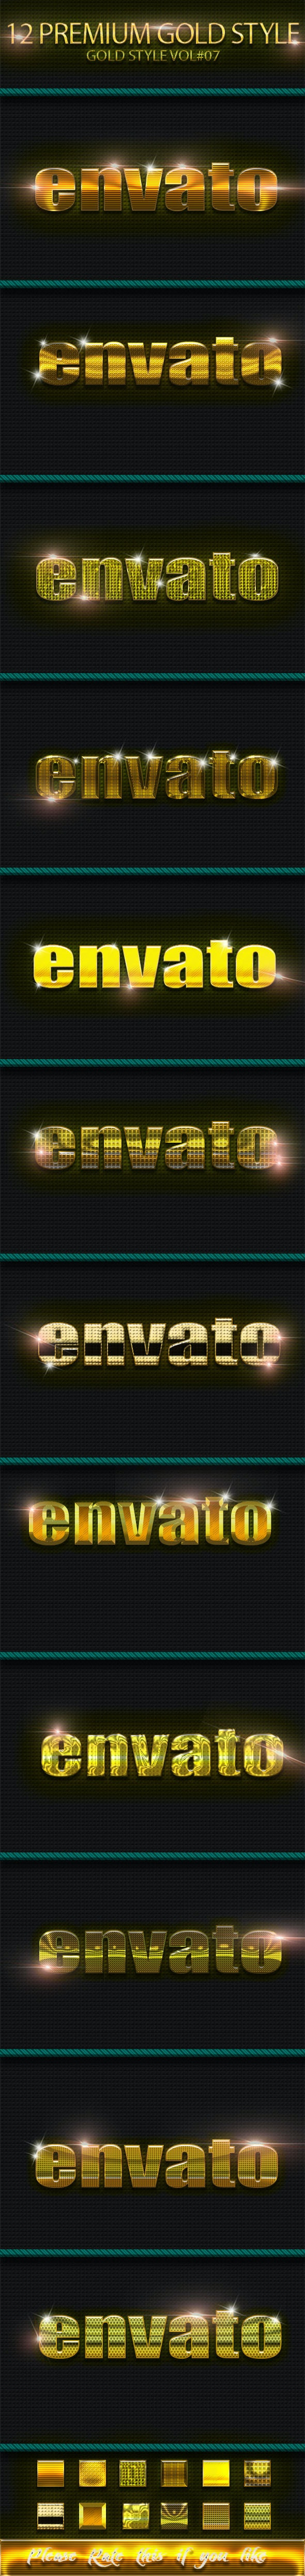 12 Photoshop Text Effect Styles Vol 7  - Text Effects Styles